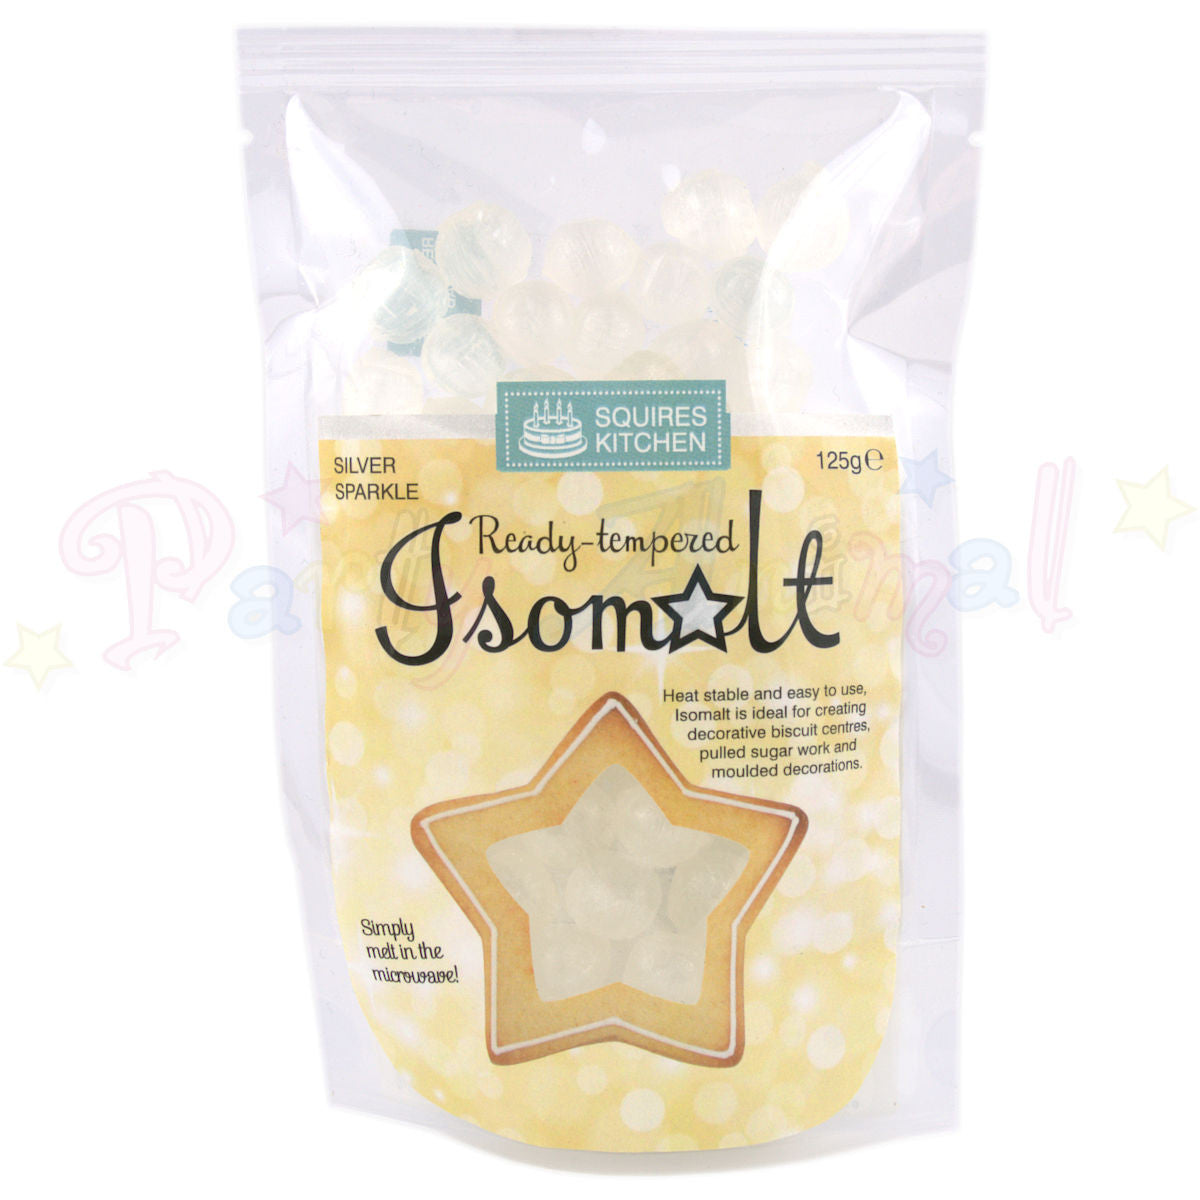 Isomalt Ready Tempered - Silver Sparkle 125g Pack